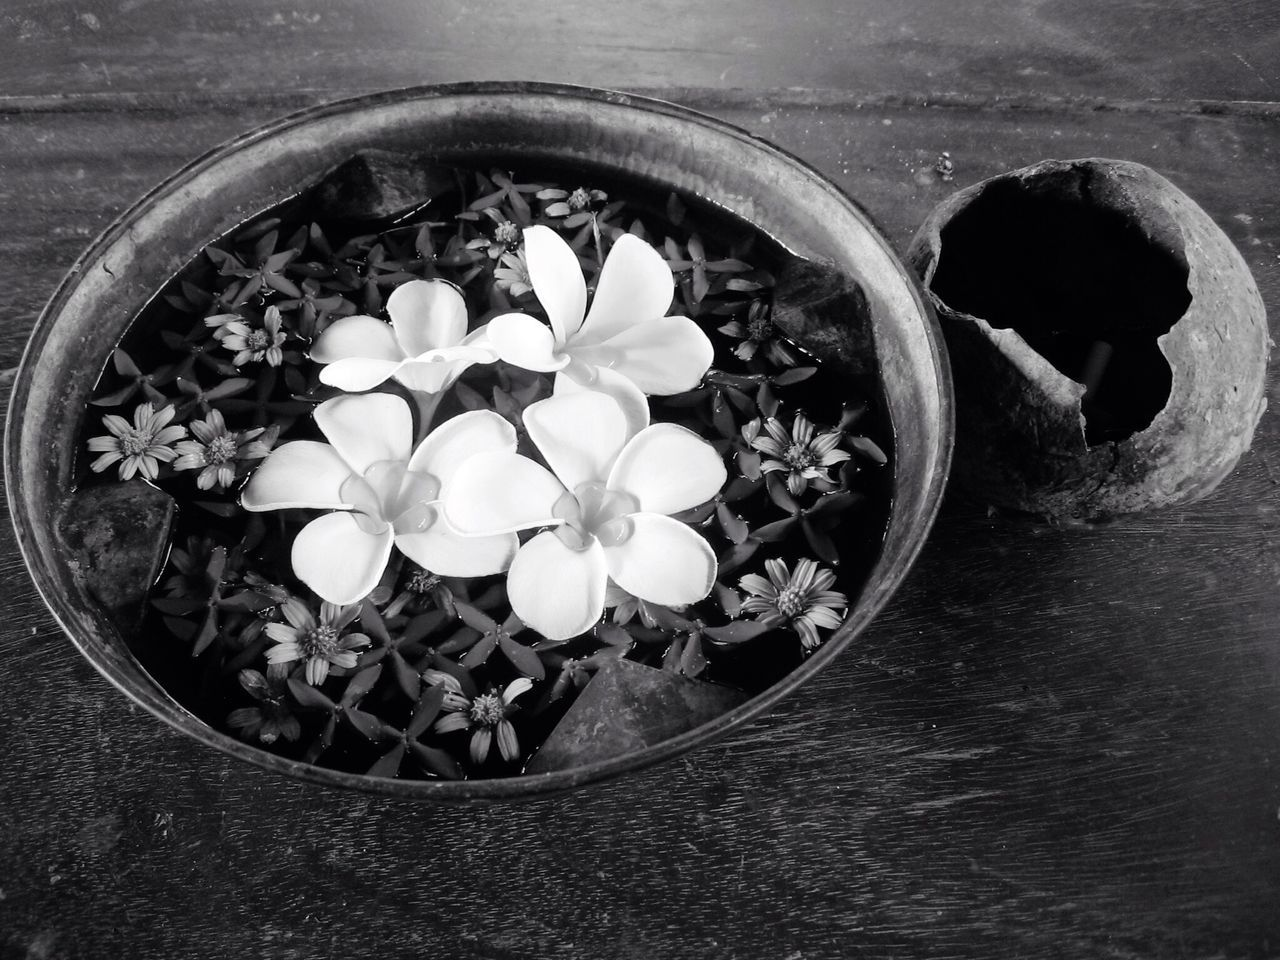 Flowers Flower Flowerporn Flower Collection Bowl Black&white Black And White EyeEm Black&white! Black & White Blackandwhite Blackandwhite Photography Beautiful Relaxing ASIA Asian Culture Asianstyle